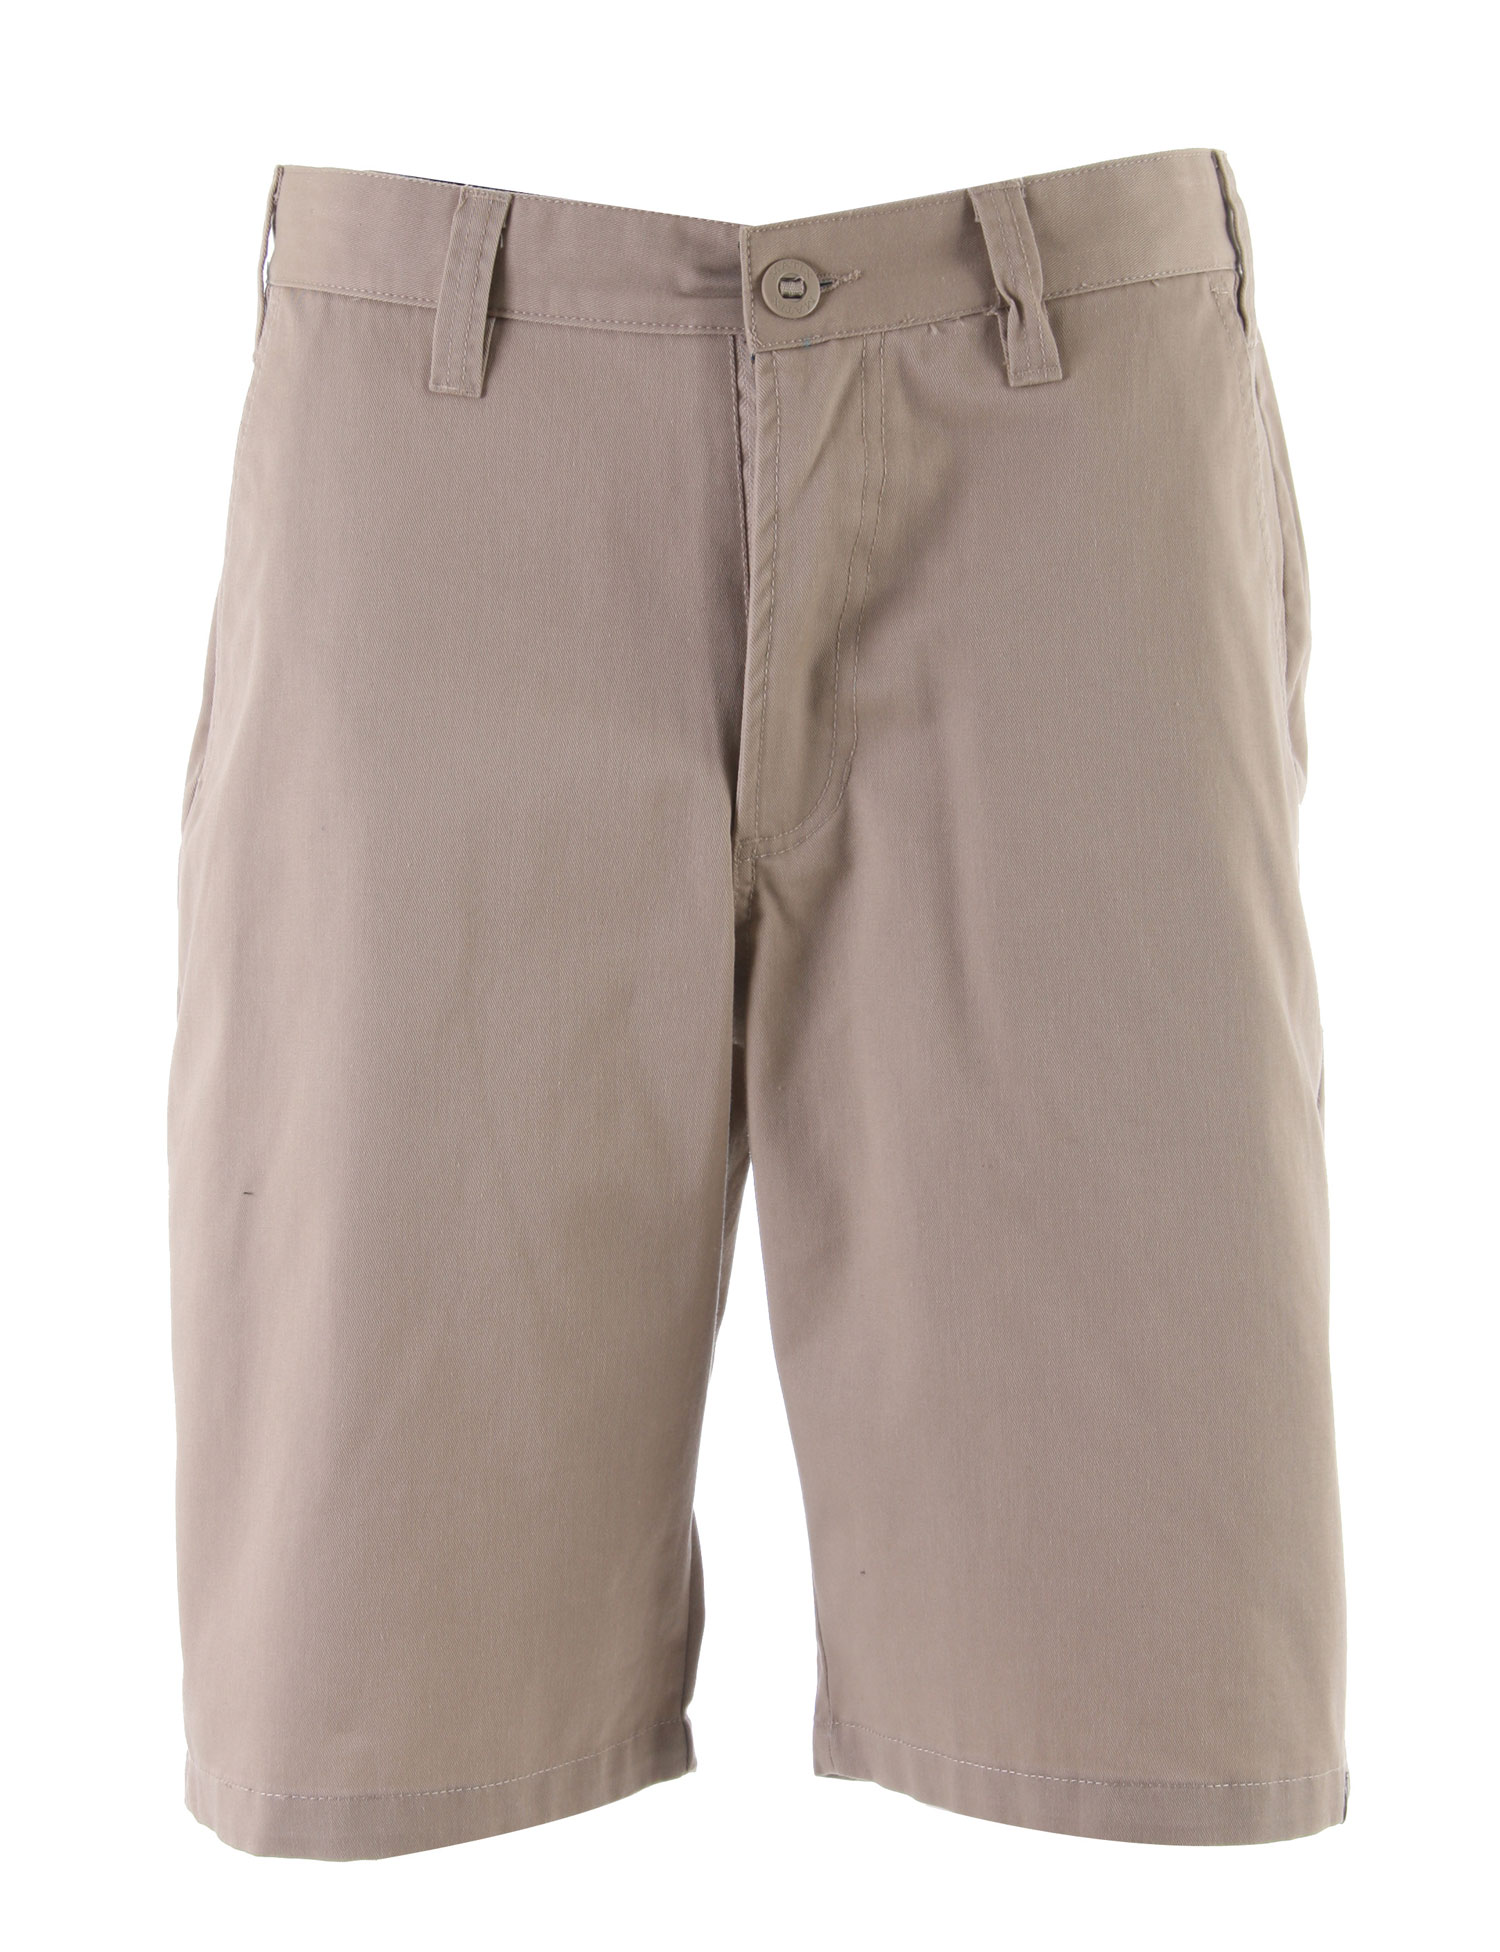 "If you're in search of a classic pair of shorts that can be worn with just about anything, this is the one for you. The Matix Welder 22"" Shorts is a classic chino designed with front and back pockets. Made with cotton and poly twill, these shorts are ultra comfortable. Pair it with a polo shirt, T-shirt or even a hoodie and your look is complete. You can wear it during the day or at night. Versatile and comfortable, these Matix Welder 22"" Shorts are a must have.Key Features of the Matix Welder 22"" Shorts: 60% Cotton/40% Poly Twill casual work/chino short with front/back pockets cellphone pocket plaid inside waistband hidden fortune cookie label inside waistband workwear labeling 22"" outseam for sz 32 - $26.95"